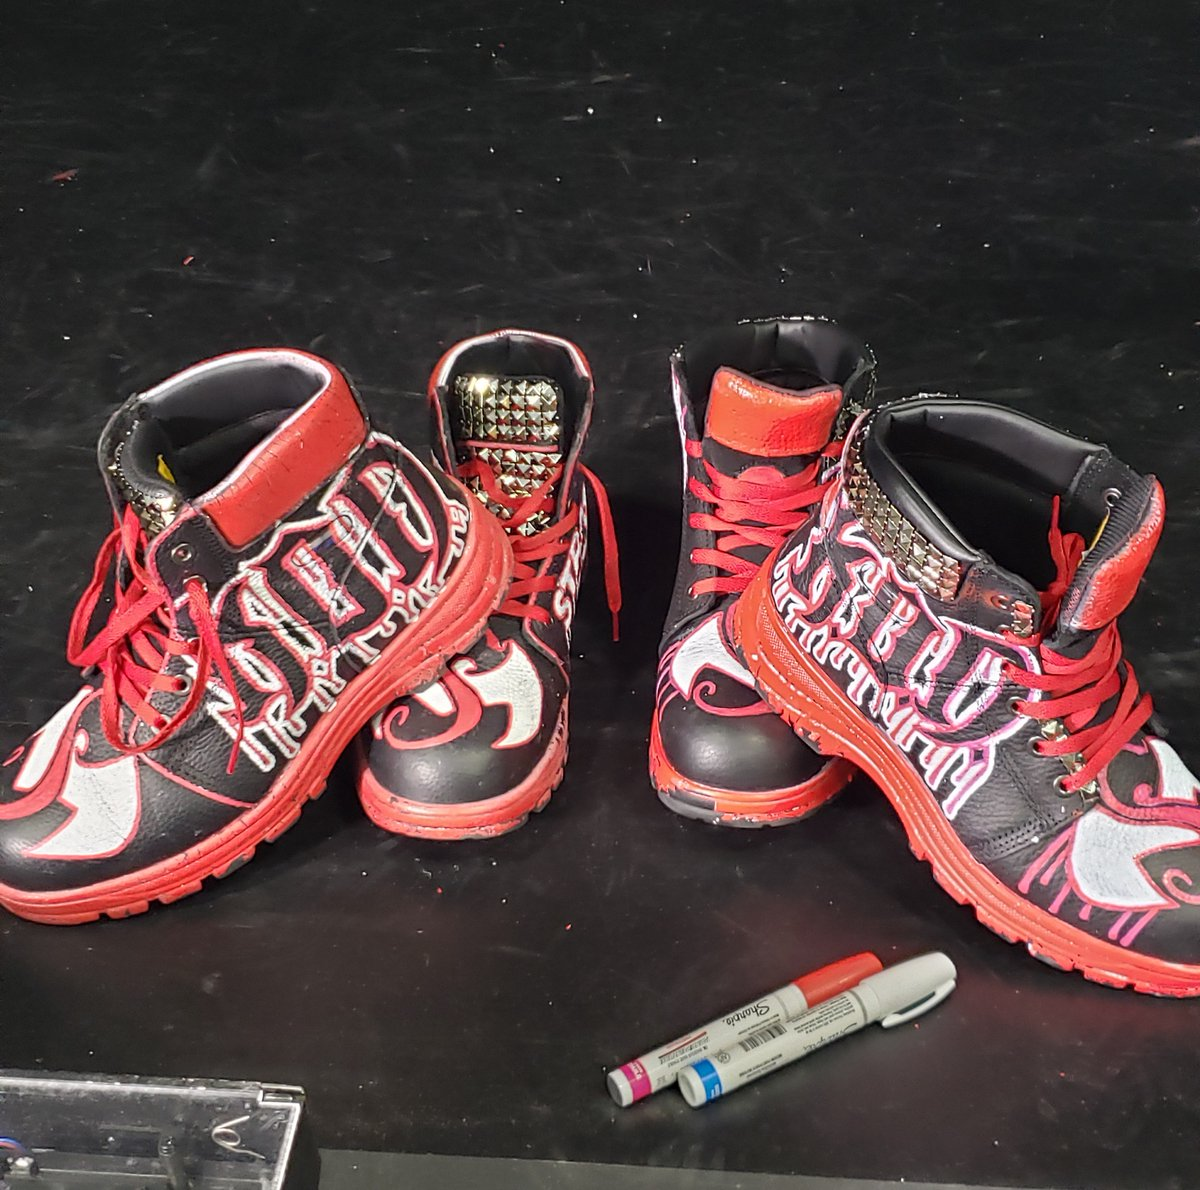 The K.O.D. boots that were worn on the last livestream by @TechN9ne and @KrizzKaliko are up for auction! Proceeds go to #CrewNation which helps the people affected by COVID-19 in the live music business. Hit the link below to bid!